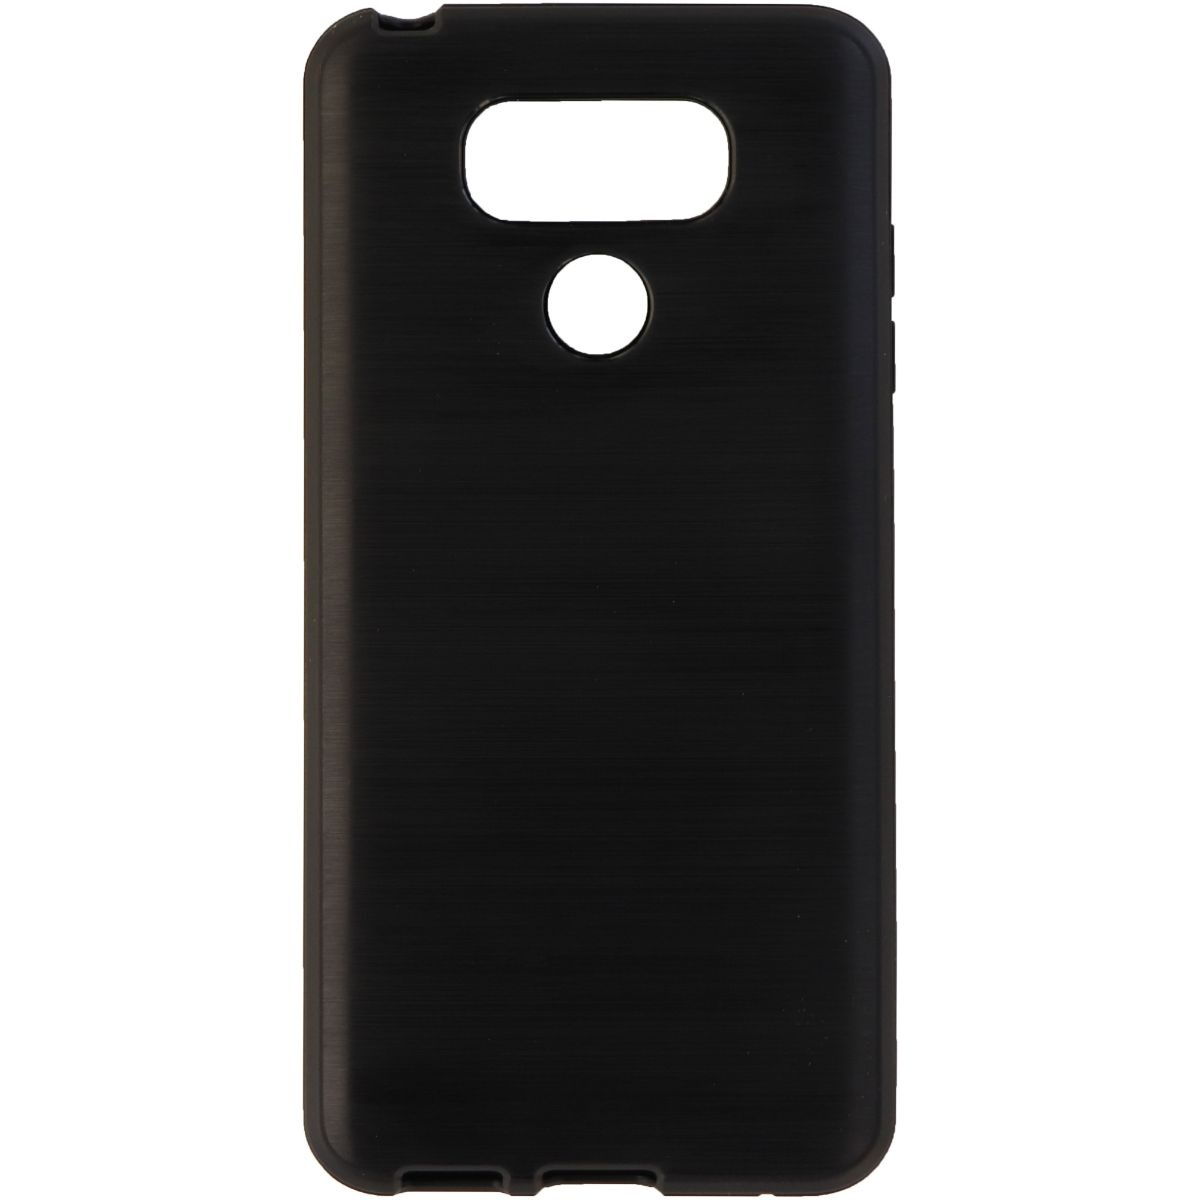 Verizon Silicone Case for LG G6 Smartphone - Black